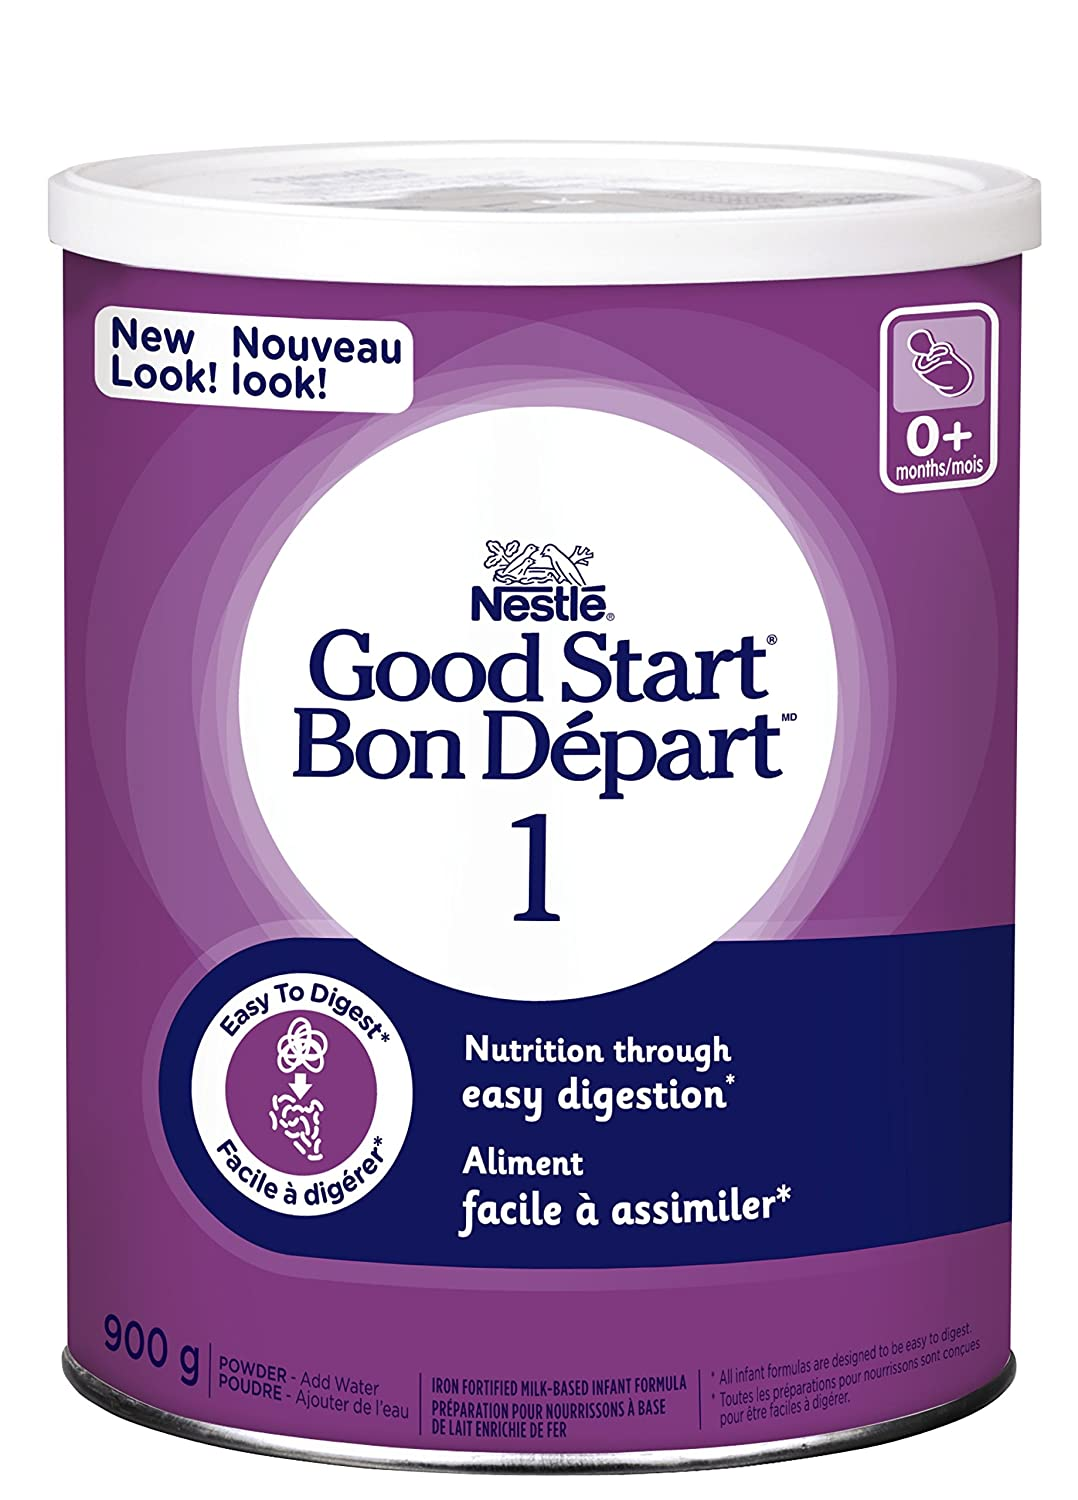 NESTLÉ GOOD START 1, Powder, 900g Packaging Made Without